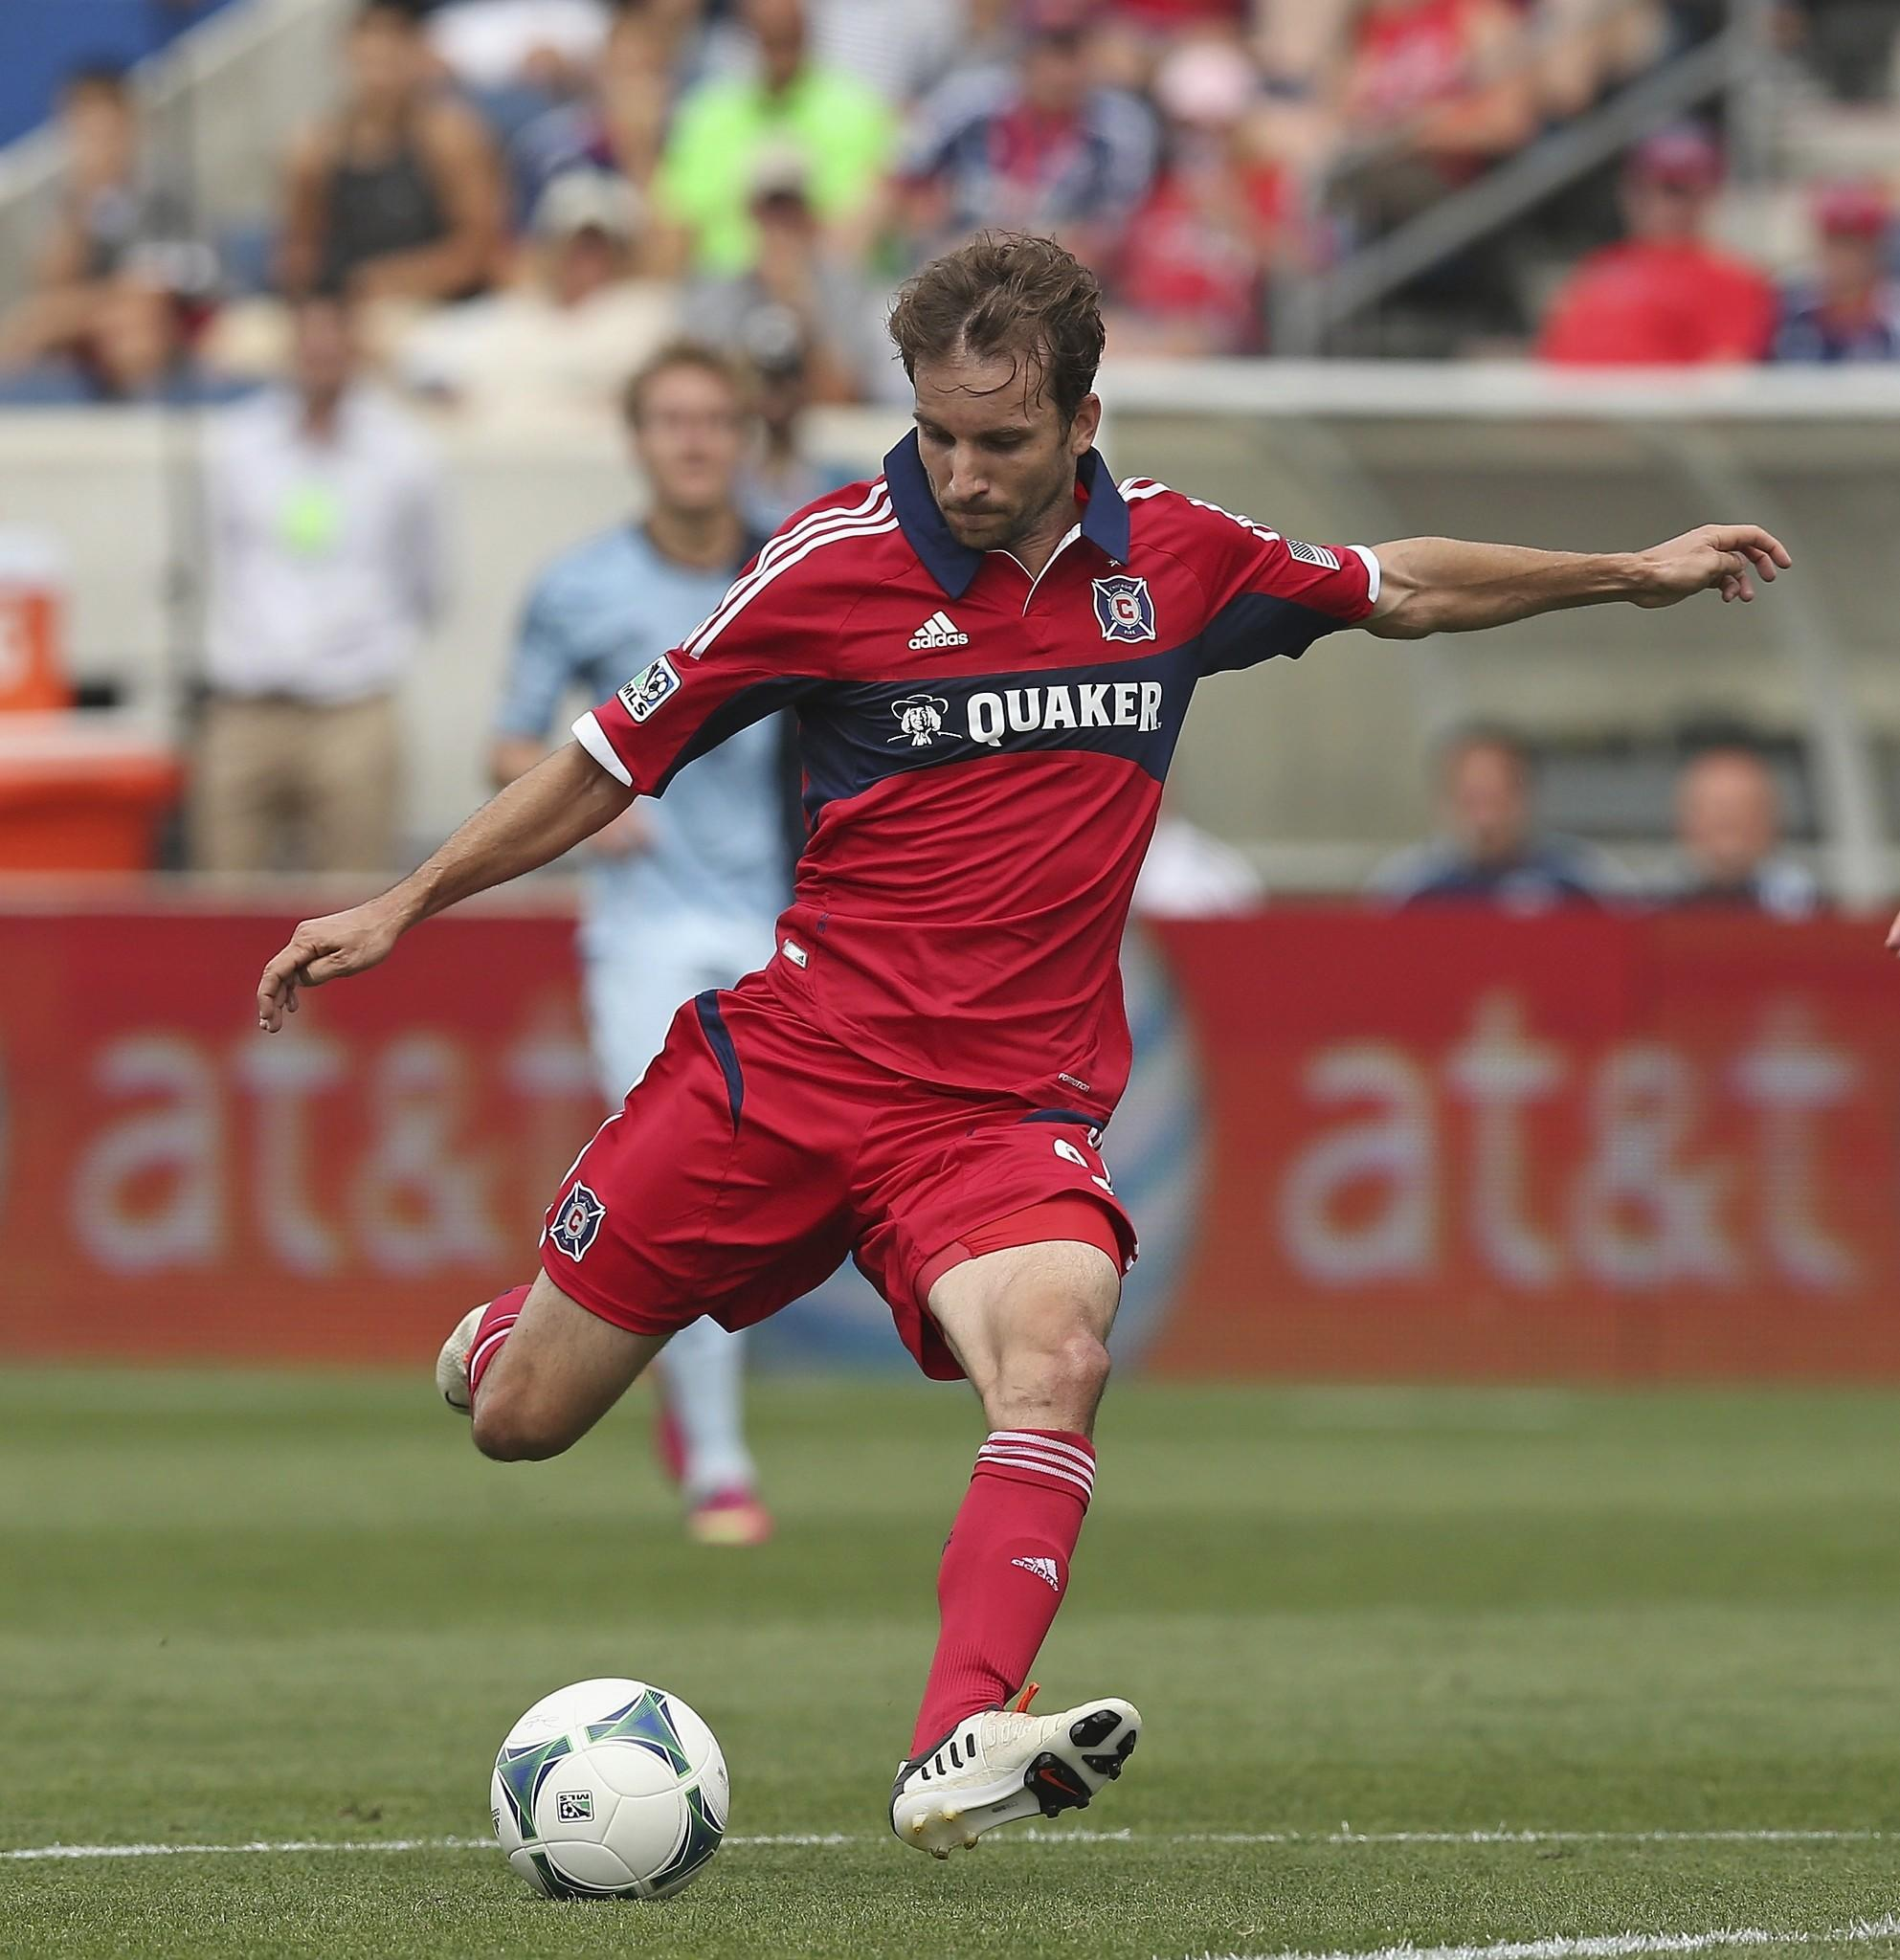 Mike Magee scores a first half goal against Sporting Kansas City during an MLS match at Toyota Park.